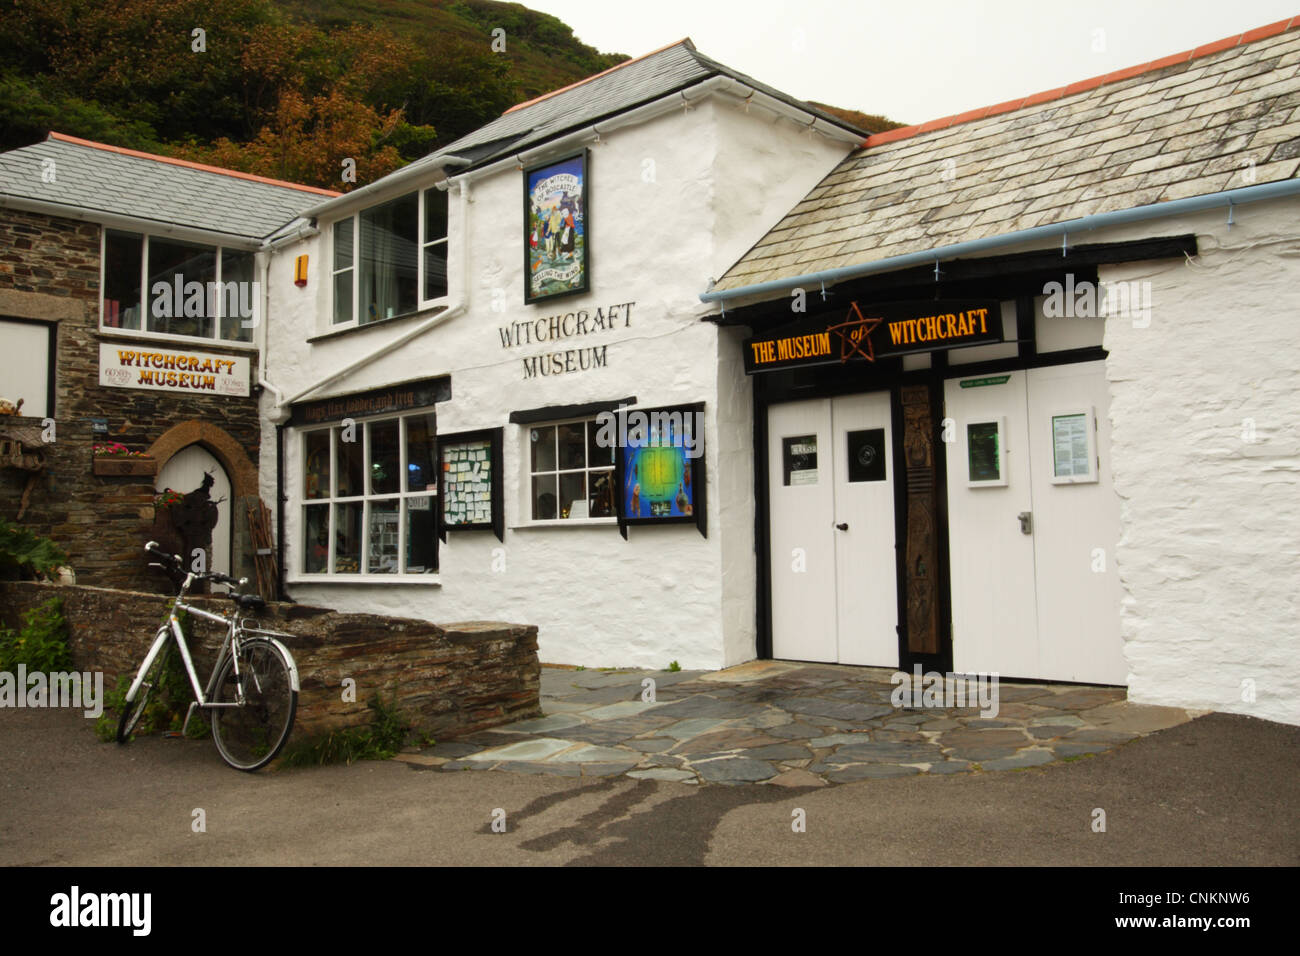 Witchcraft Museum, Boscastle, North Cornwall, United Kingdom - Stock Image